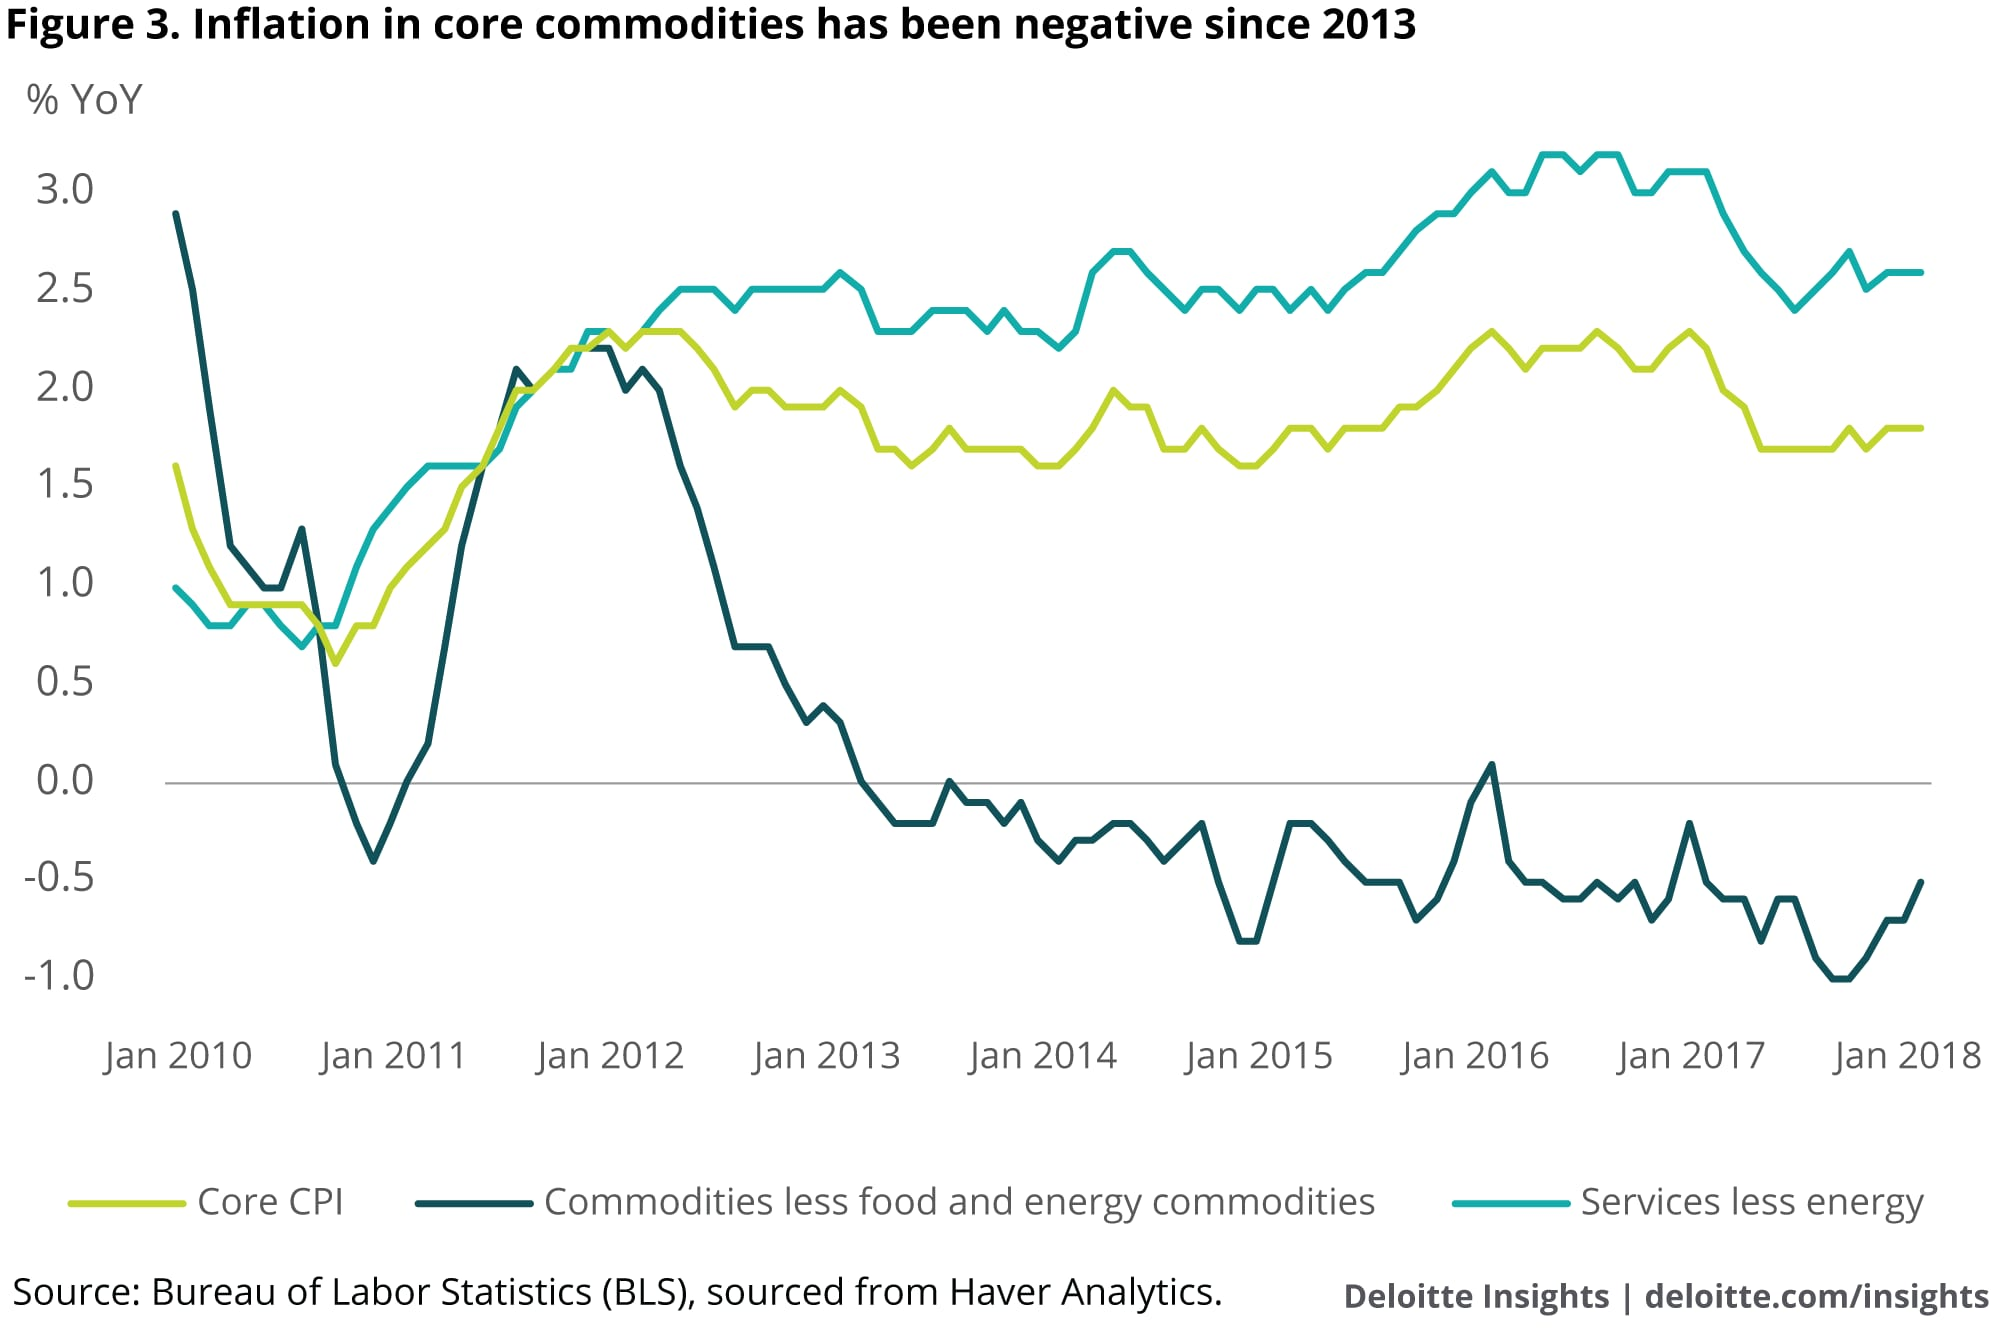 Inflation in core commodities has been negative since 2013